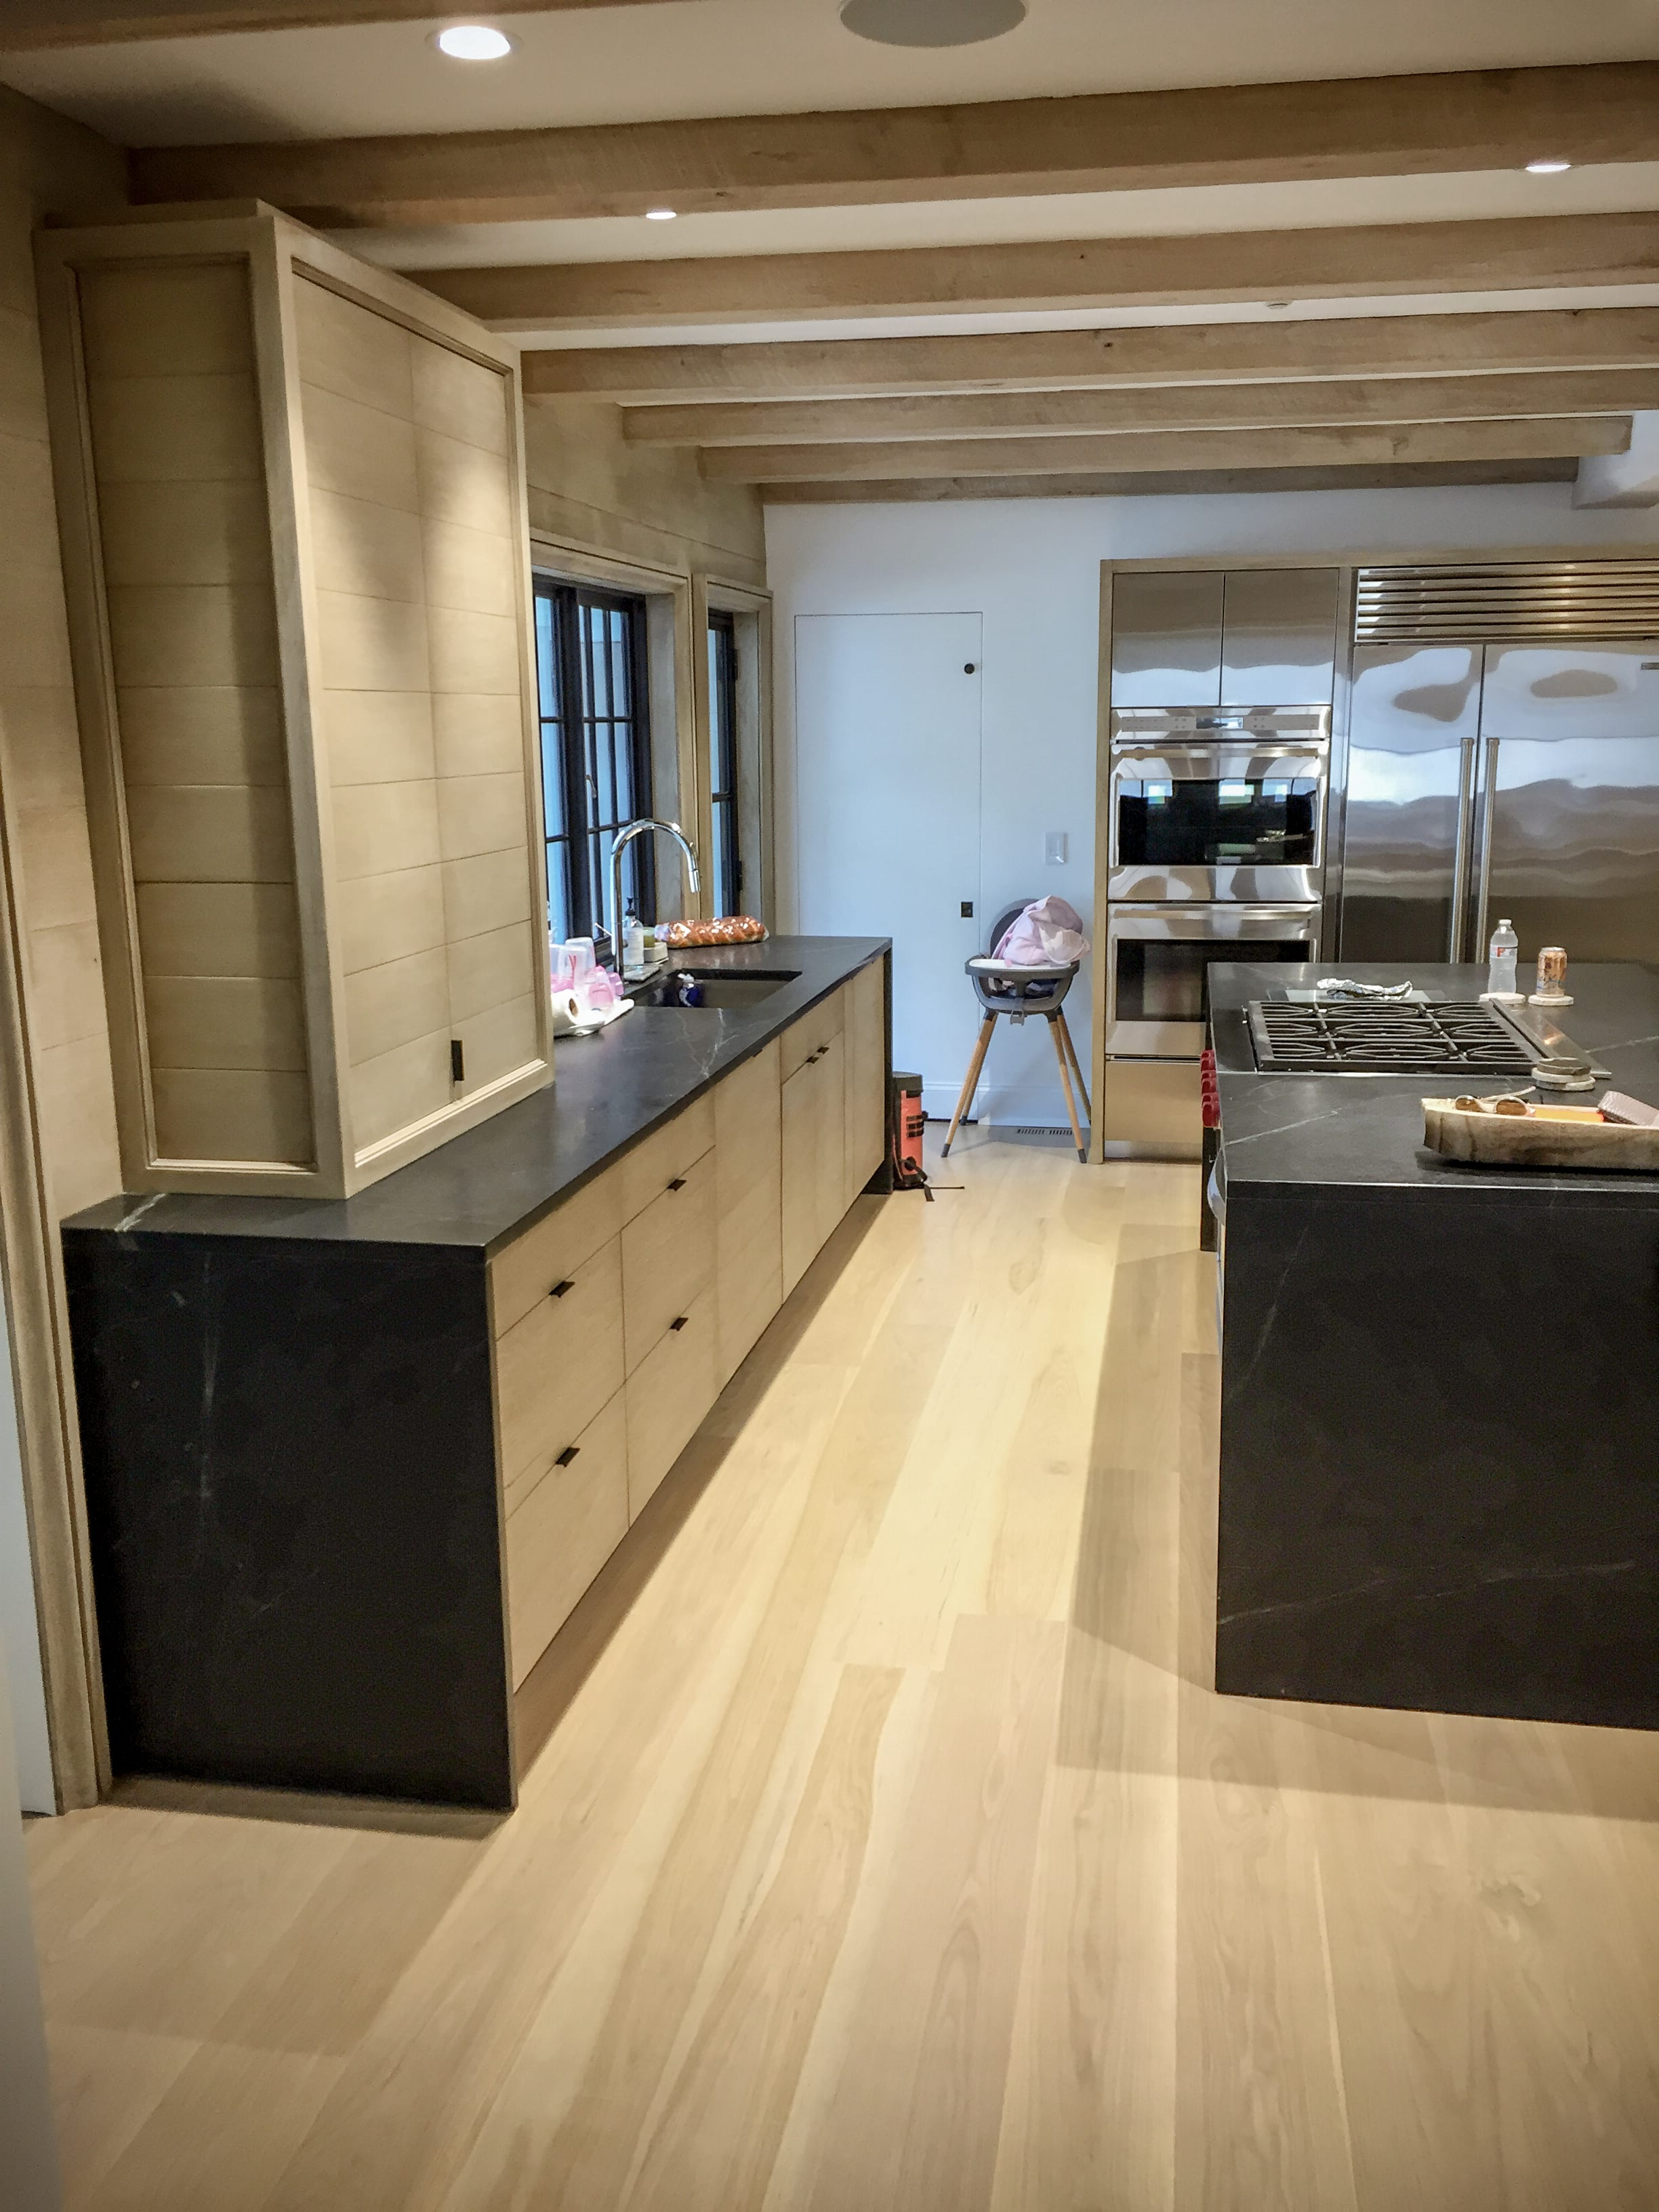 Stainless Steel Kitchen With Light Wood Cabinets